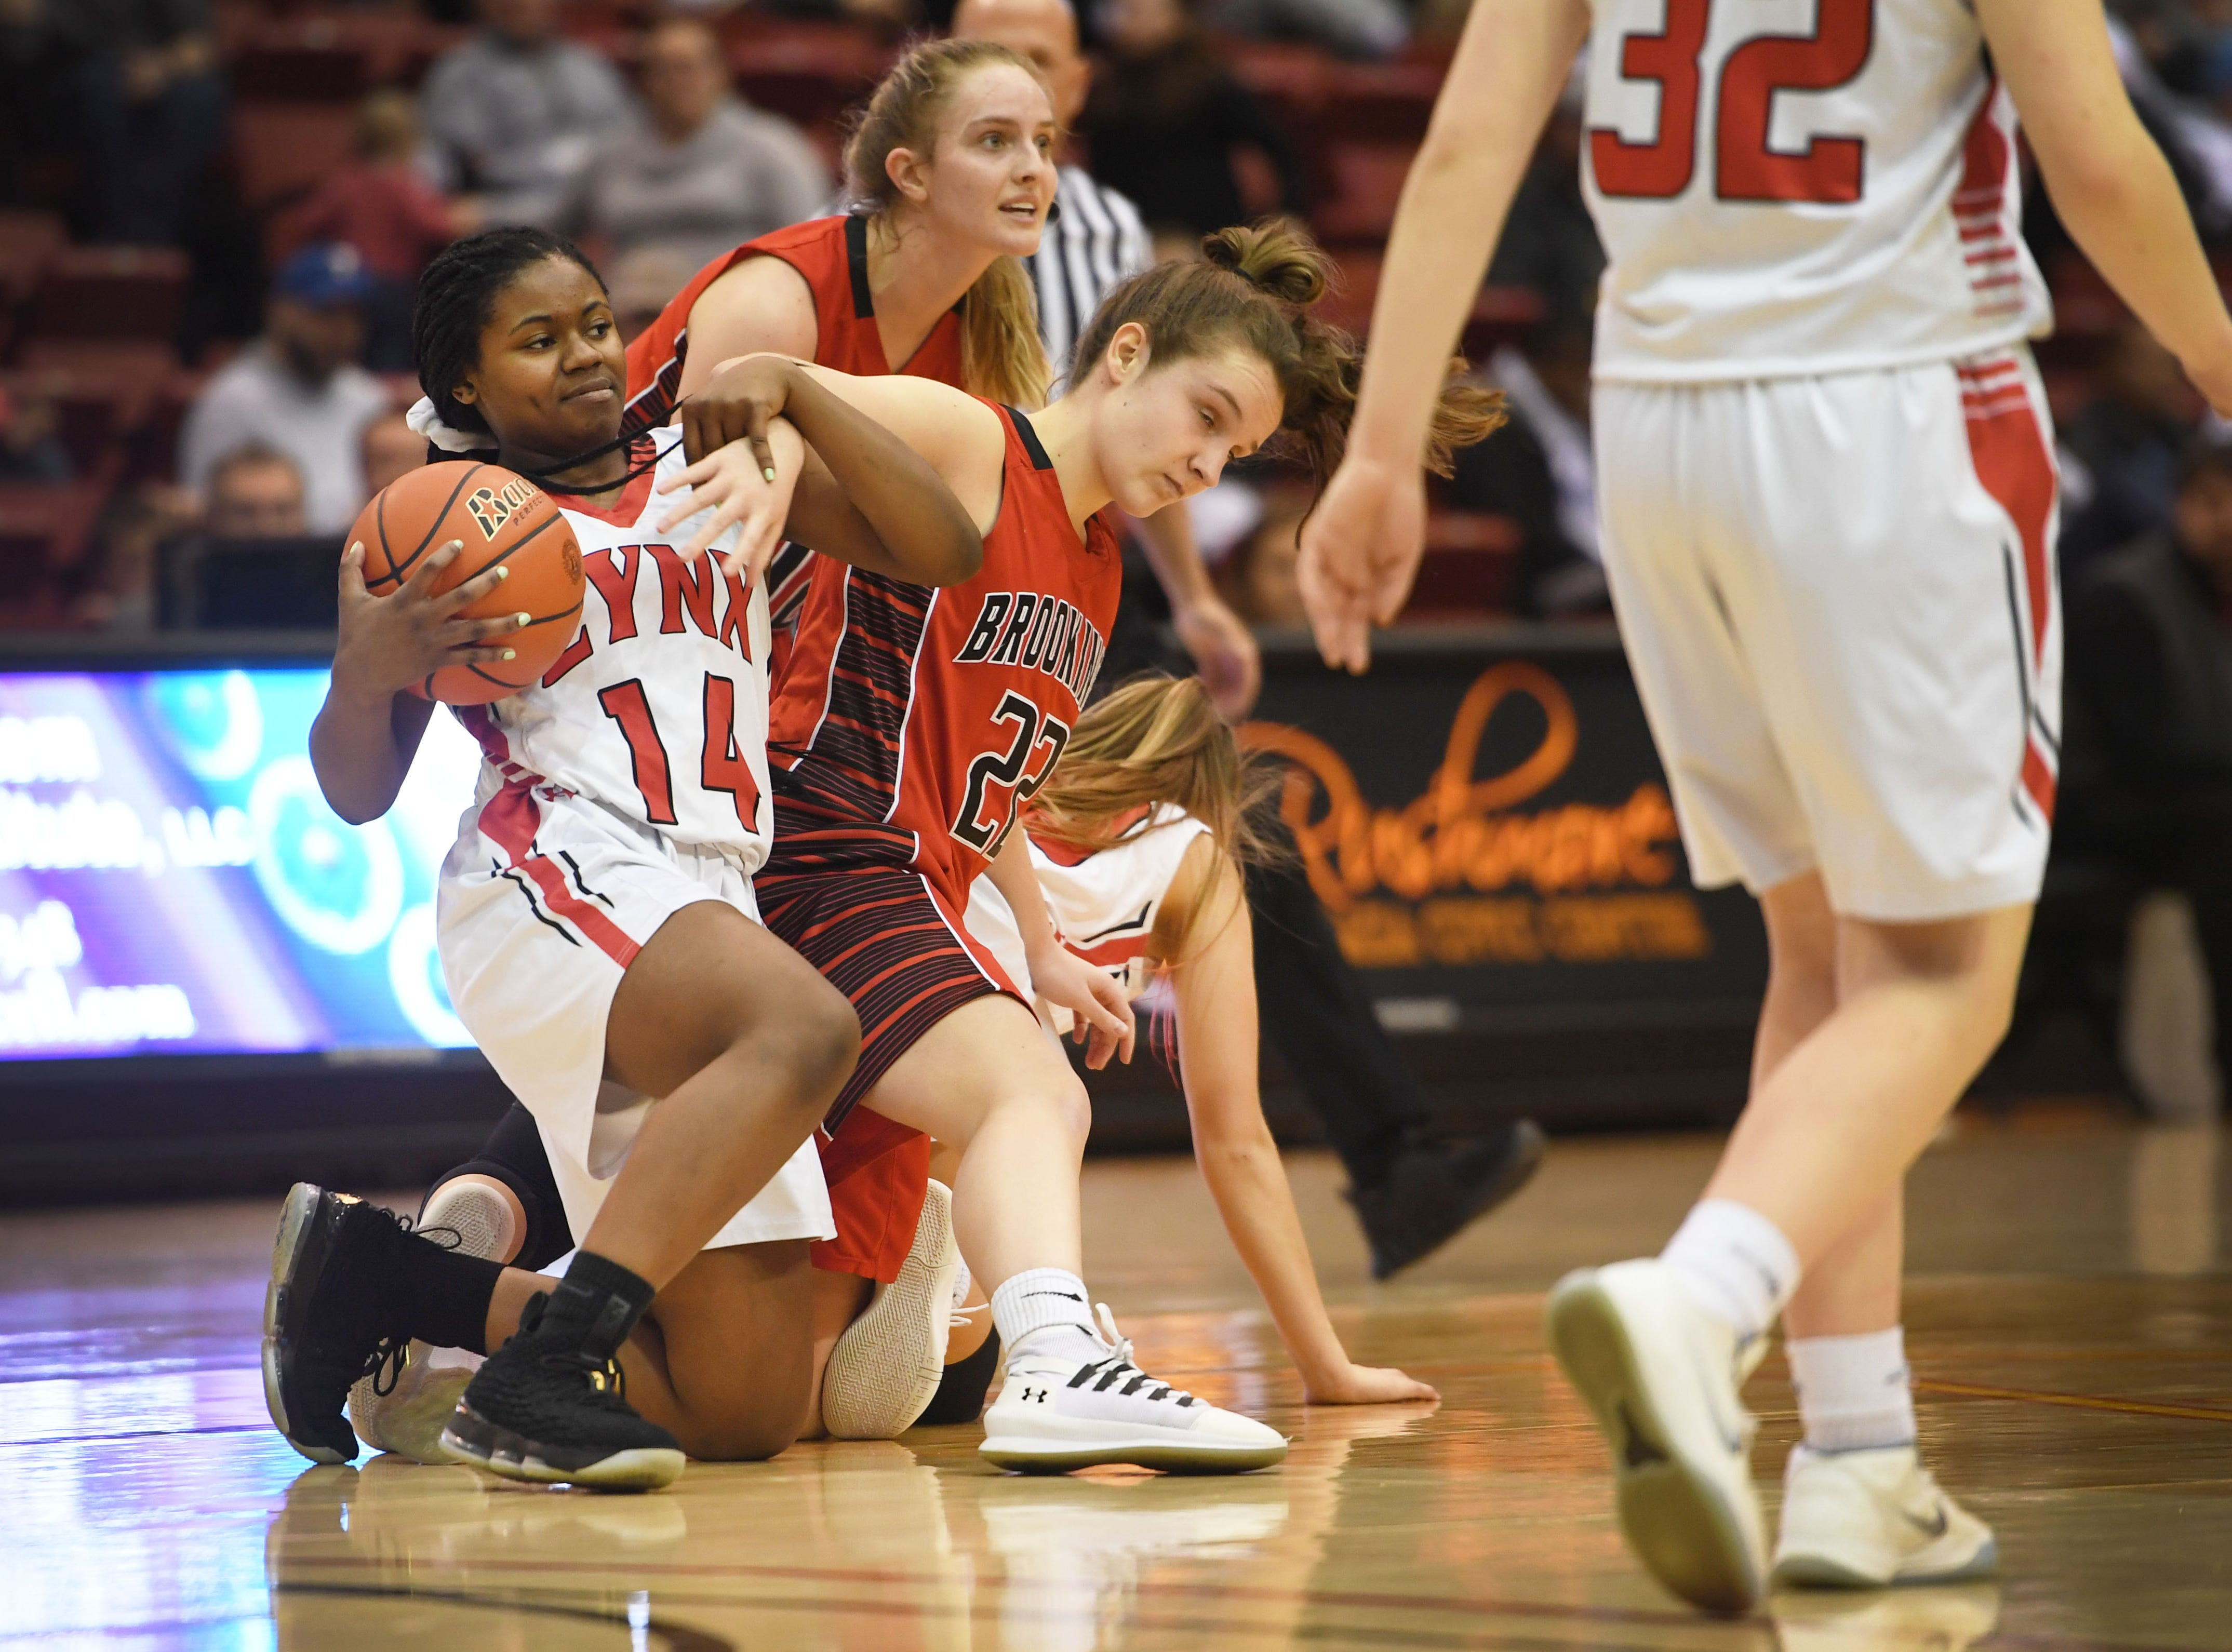 Brandon Valley's India Bradfield goes against Brookings defense during the game in the Class AA quarterfinals Thursday, March 14, in Rapid City.